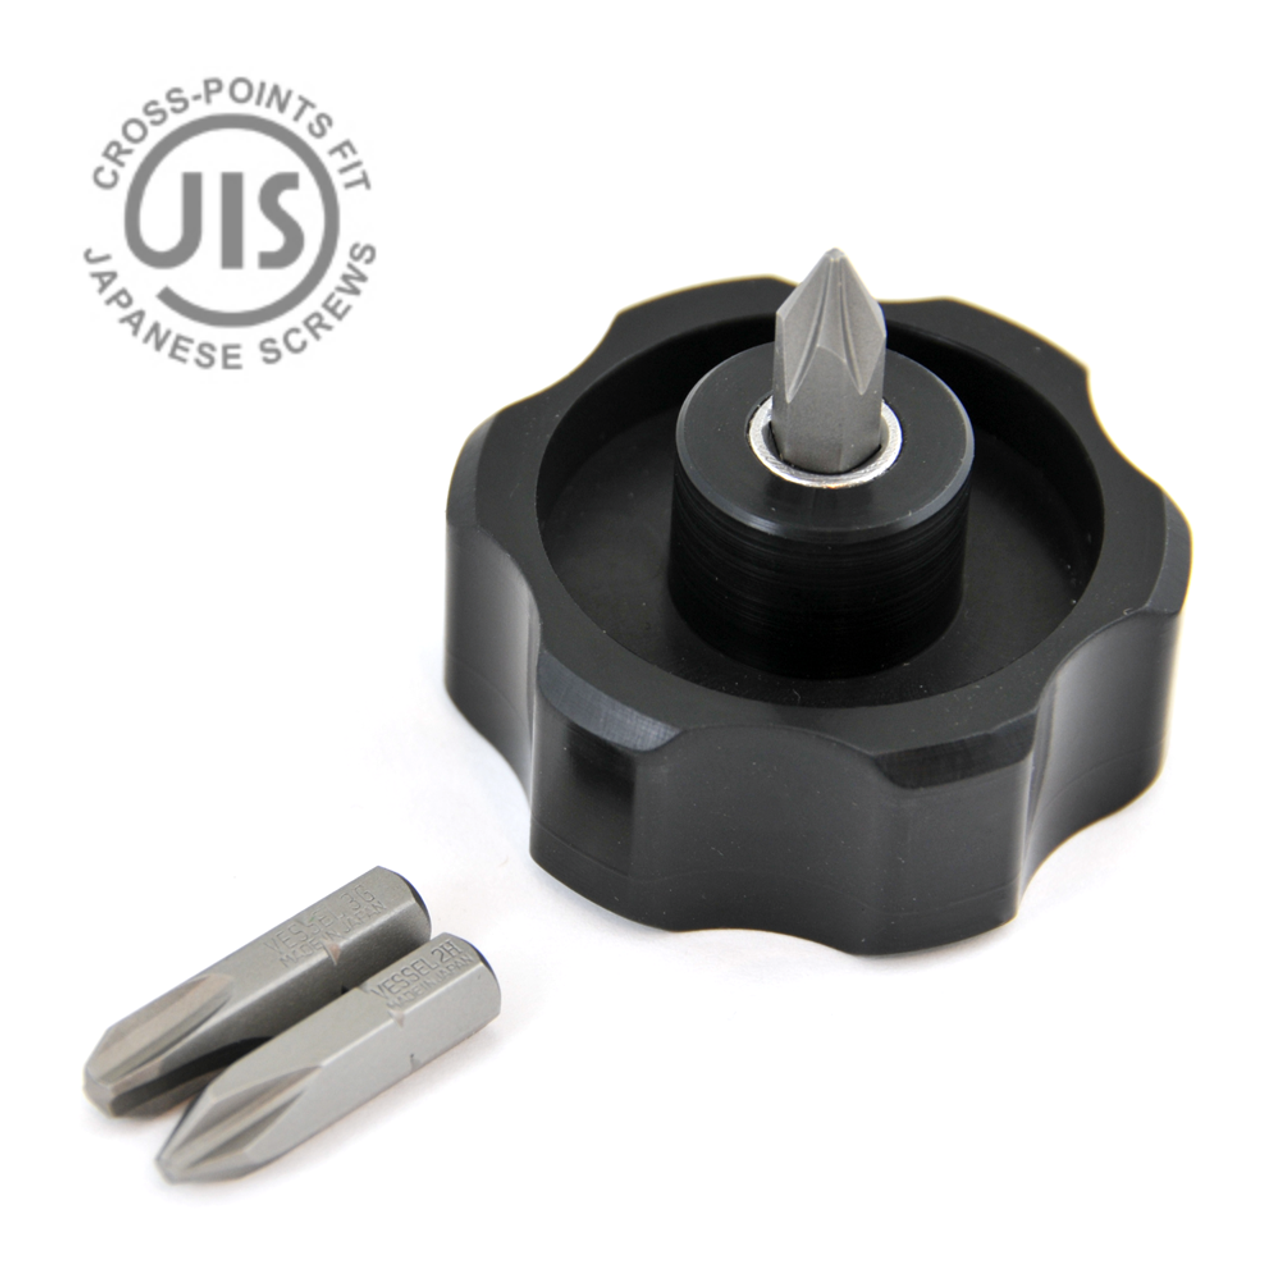 5-Piece JIS Bit Set w/Holder (VES-421270) fit perfectly into the Wits' End Handwheel